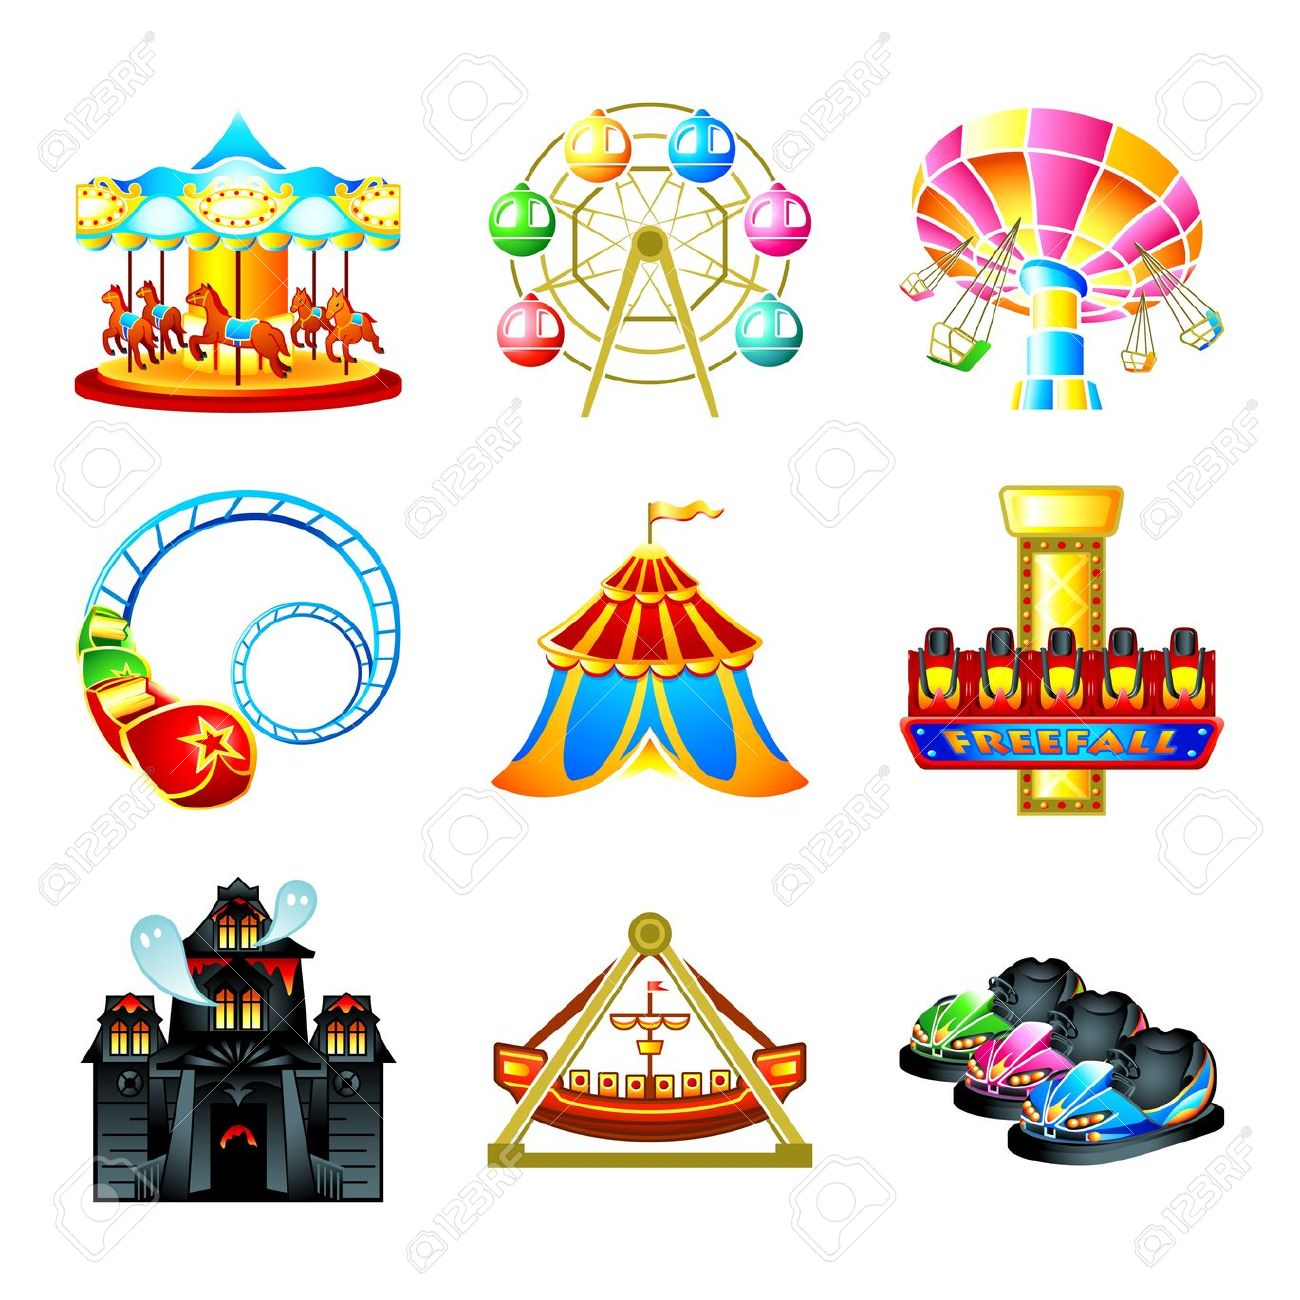 hight resolution of free carnival clipart amusement park